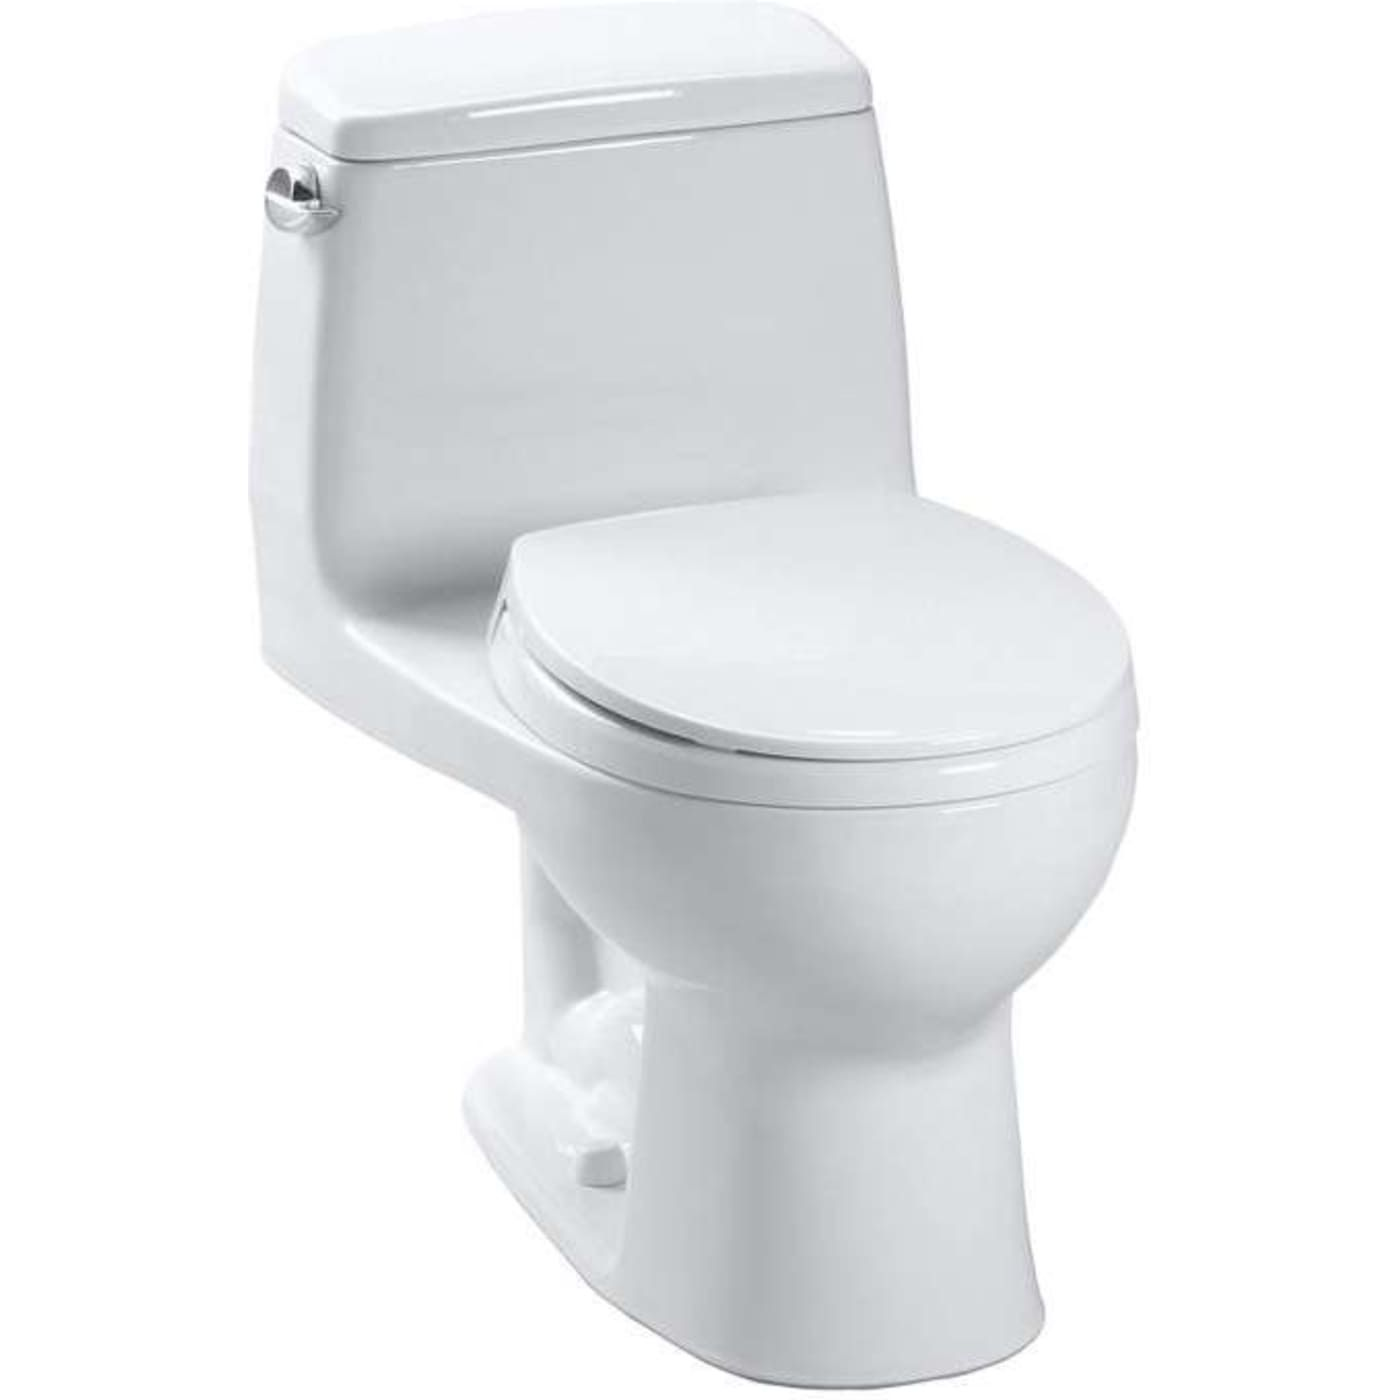 Ultramax Elongated One Piece Toilet MS854114E#11 Colonial White ...